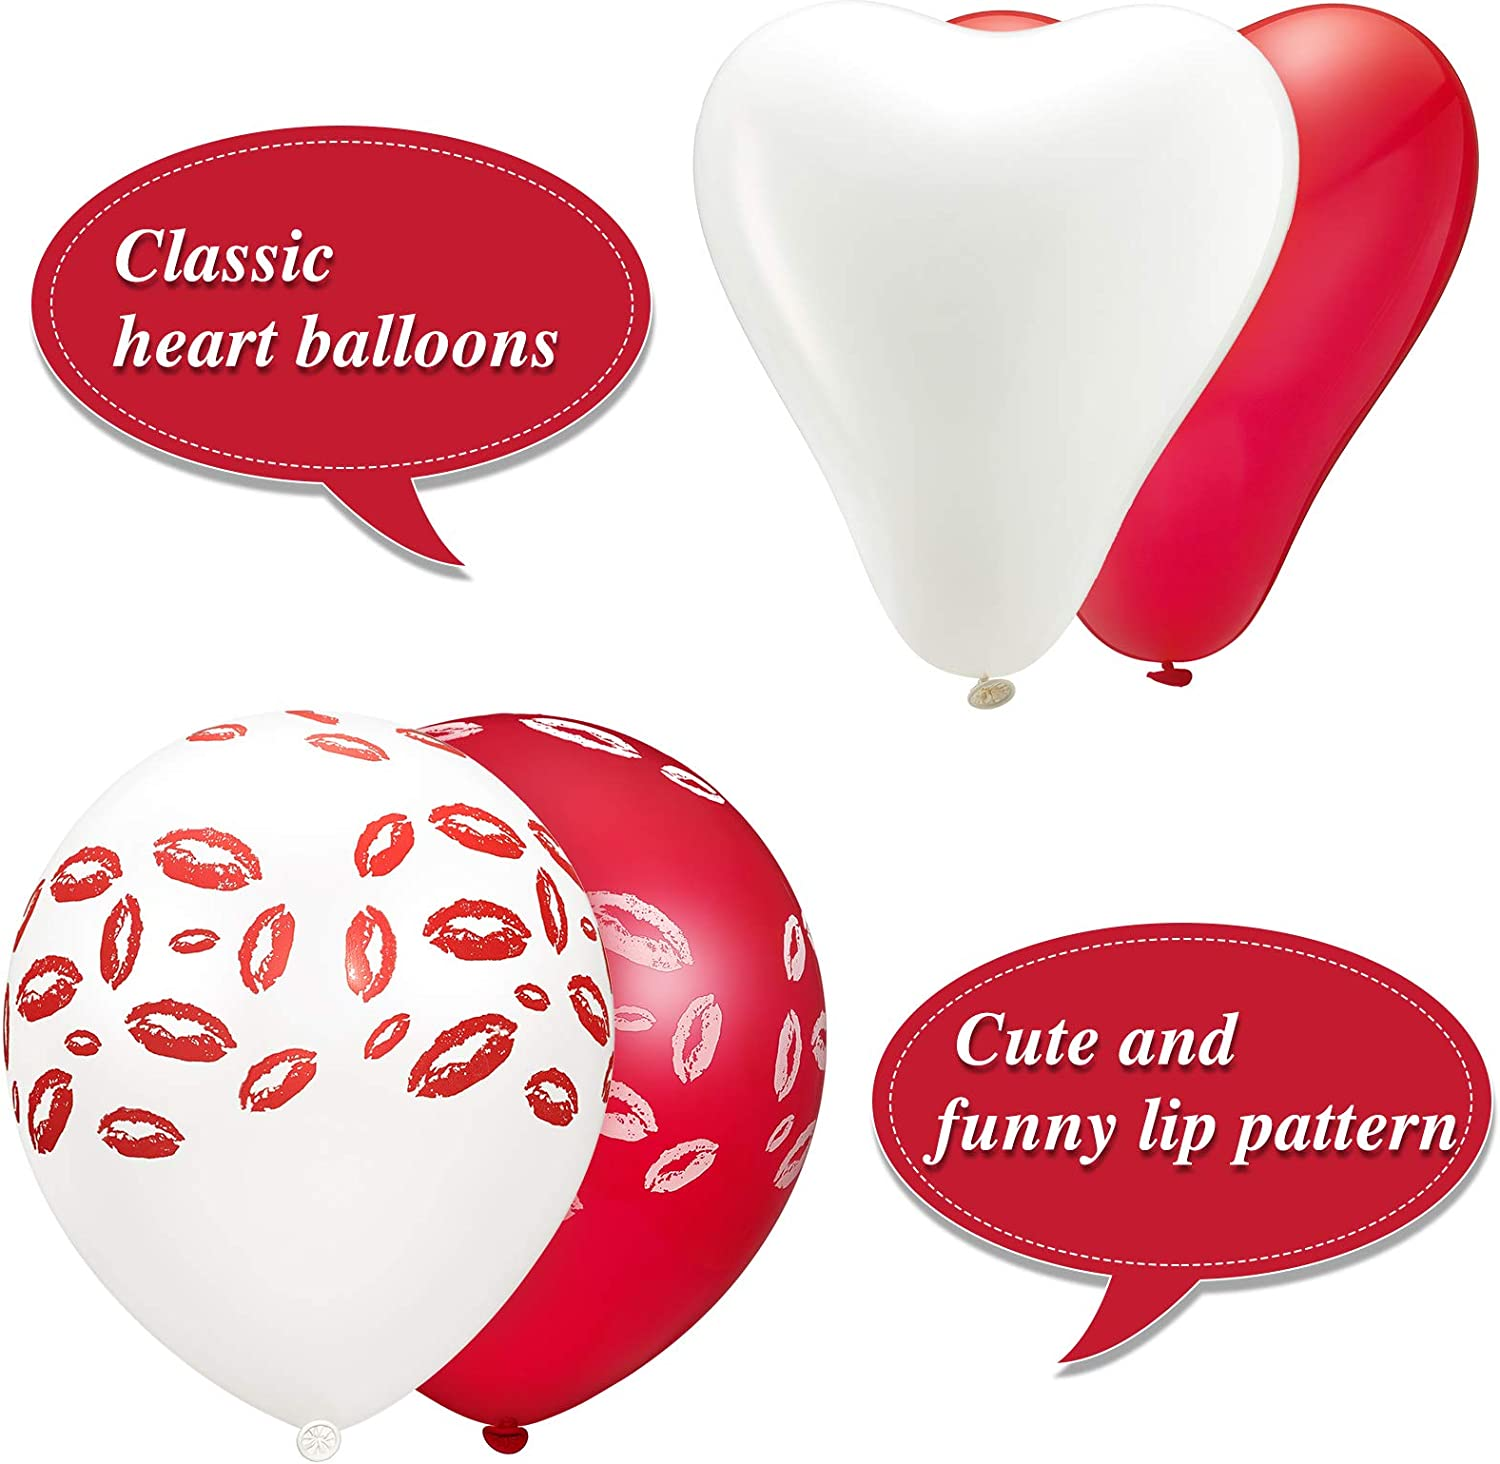 2 Colors 48 Pieces Lip and Heart Shape Latex Balloons Red and White Lip Kiss Printed Balloons Valentine Heart Balloon for Valentines Day Romantic Themed Party Decoration Anniversary Party Supplies